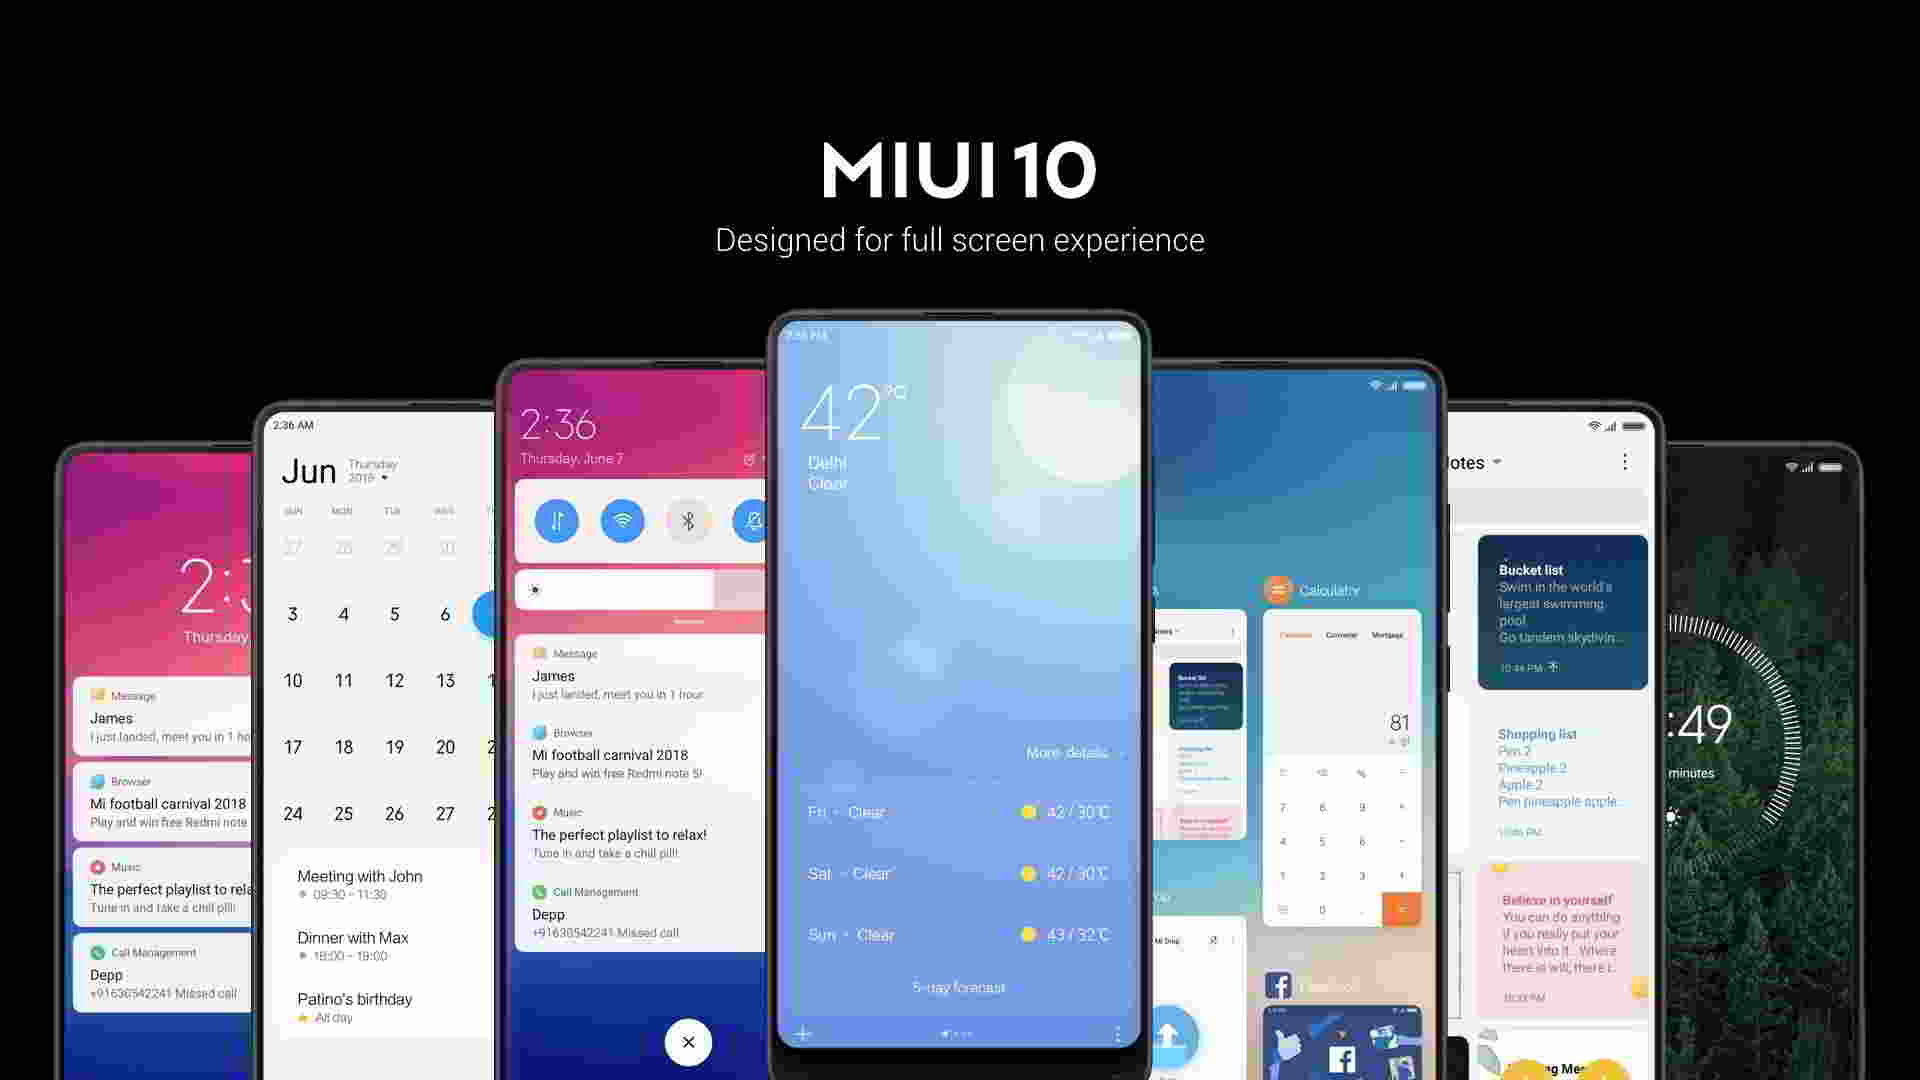 How To Turn Off Ads In MIUI 10